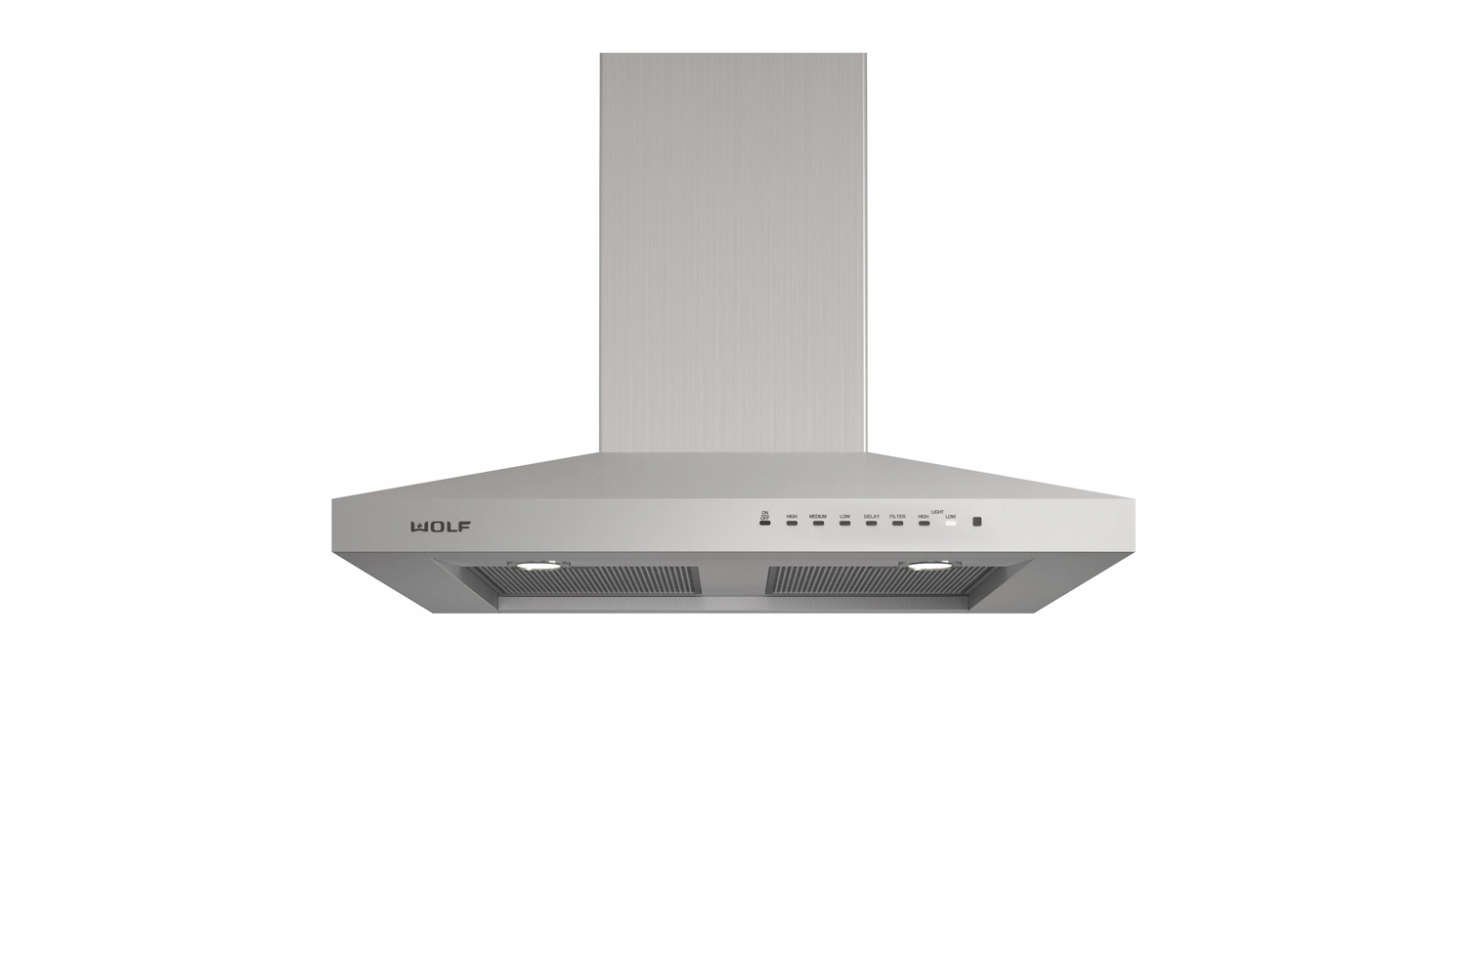 The Wolf 36-Inch Wall-Mount Chimney Range Hood has a high power blower, dishwasher-safe filters, LED lighting, and a telescoping chimney that reaches most ceiling heights. Contact AJ Madison for pricing and availability.